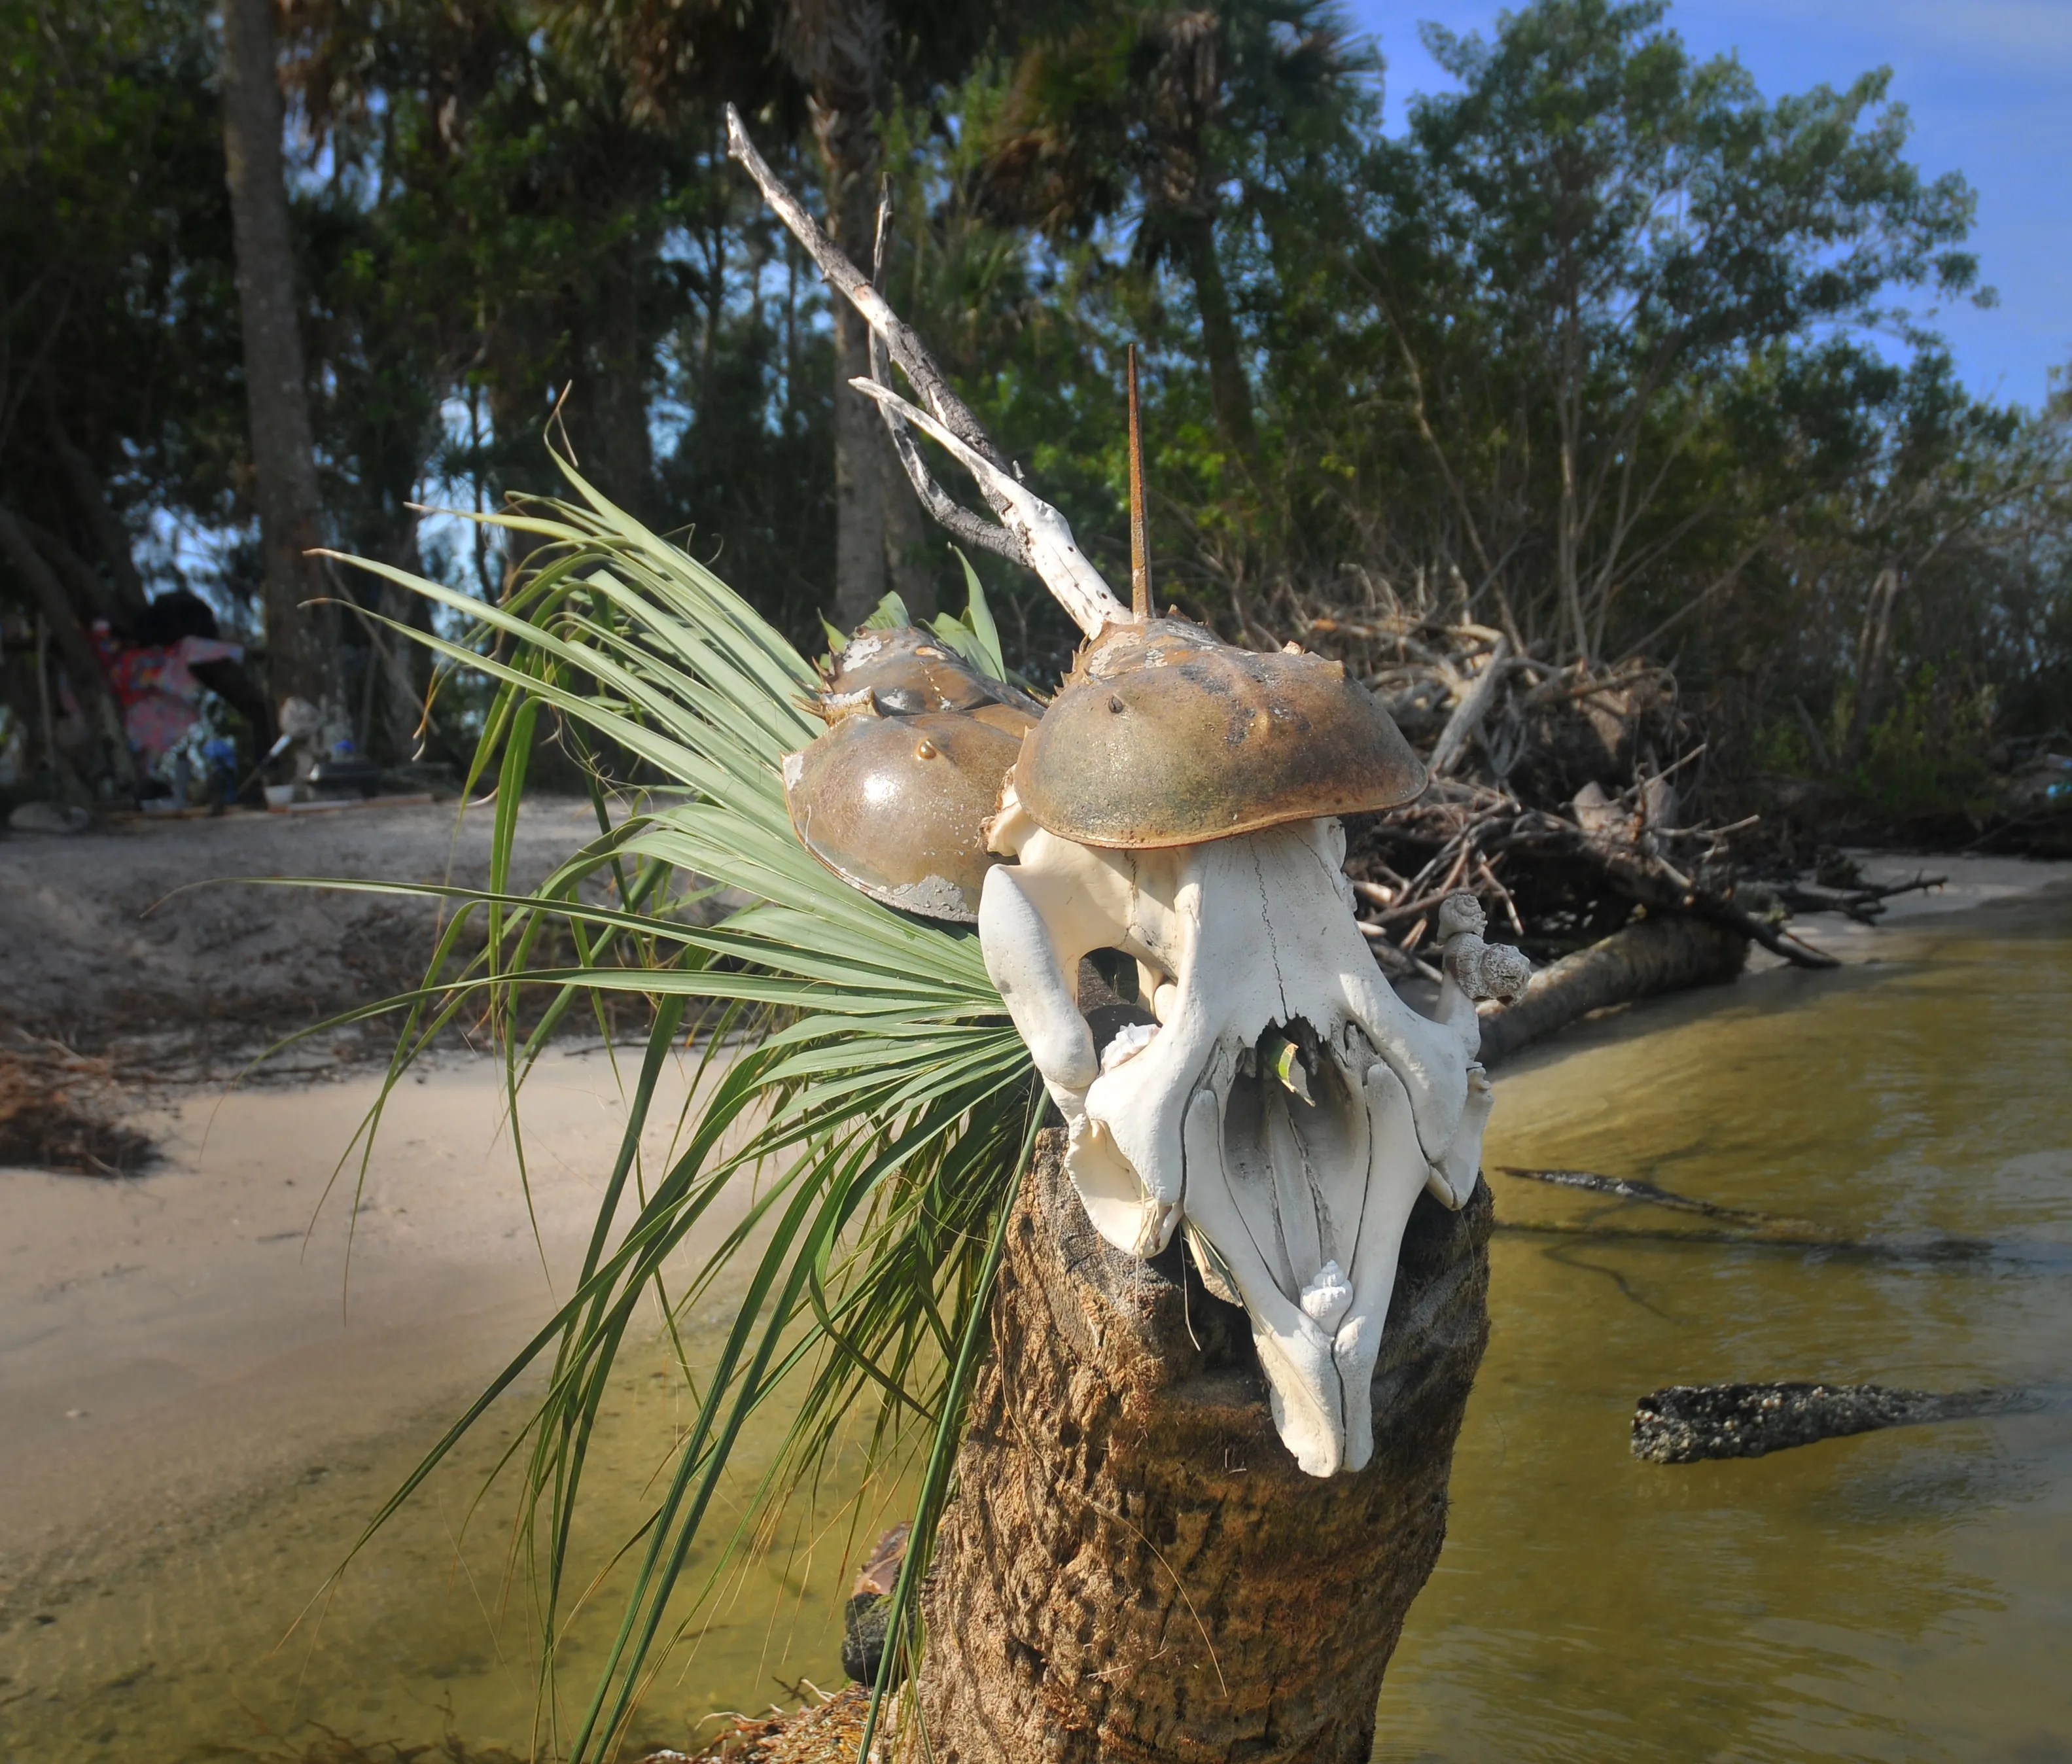 Someone has made a totem out of a manatee skull and some horseshoe crab shells near Triangle Island in the Indian River Lagoon in Merritt Island.